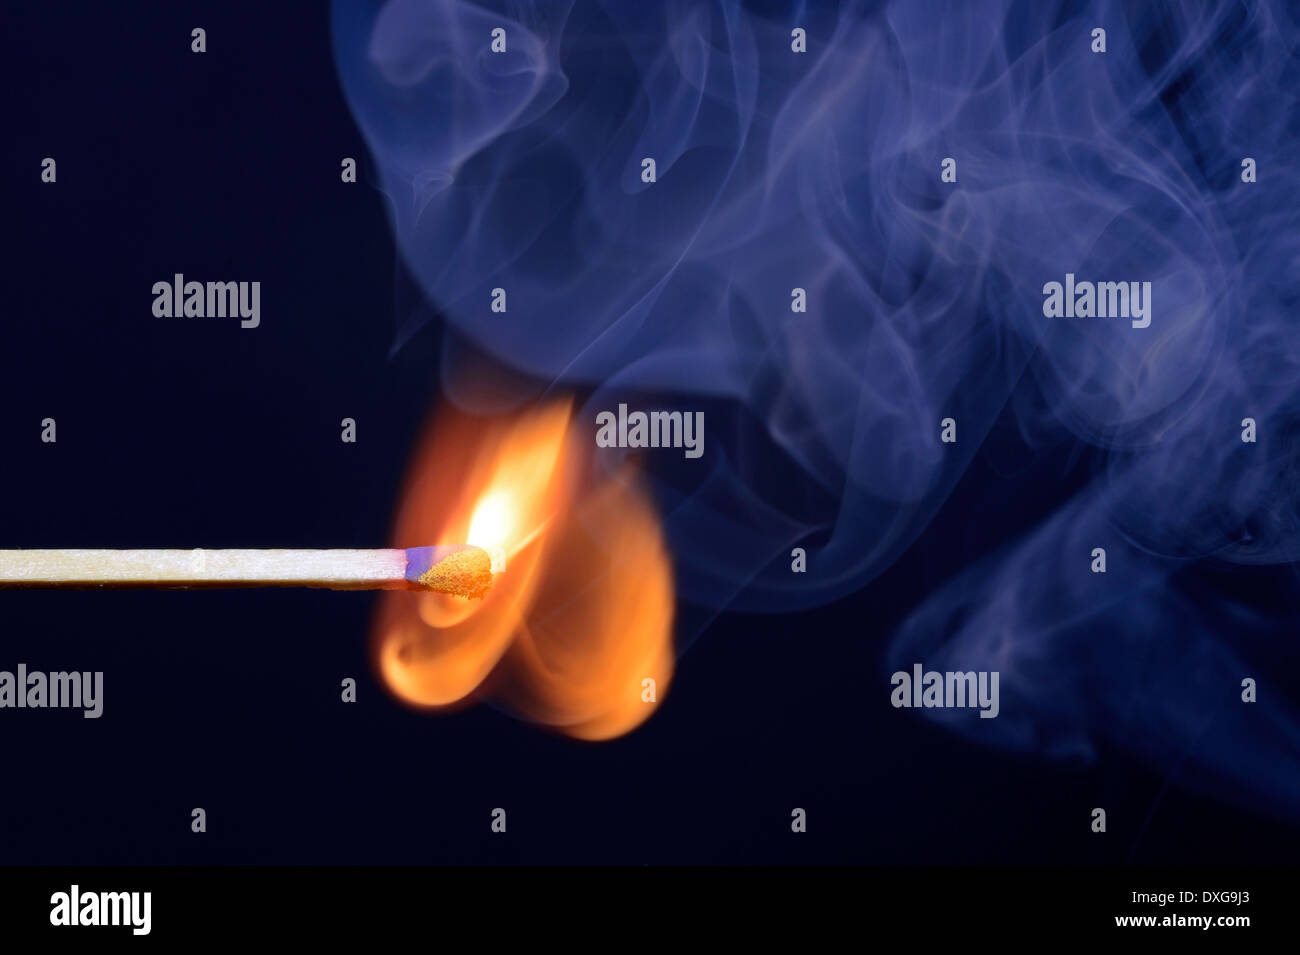 Matchstick being ignited - Stock Image